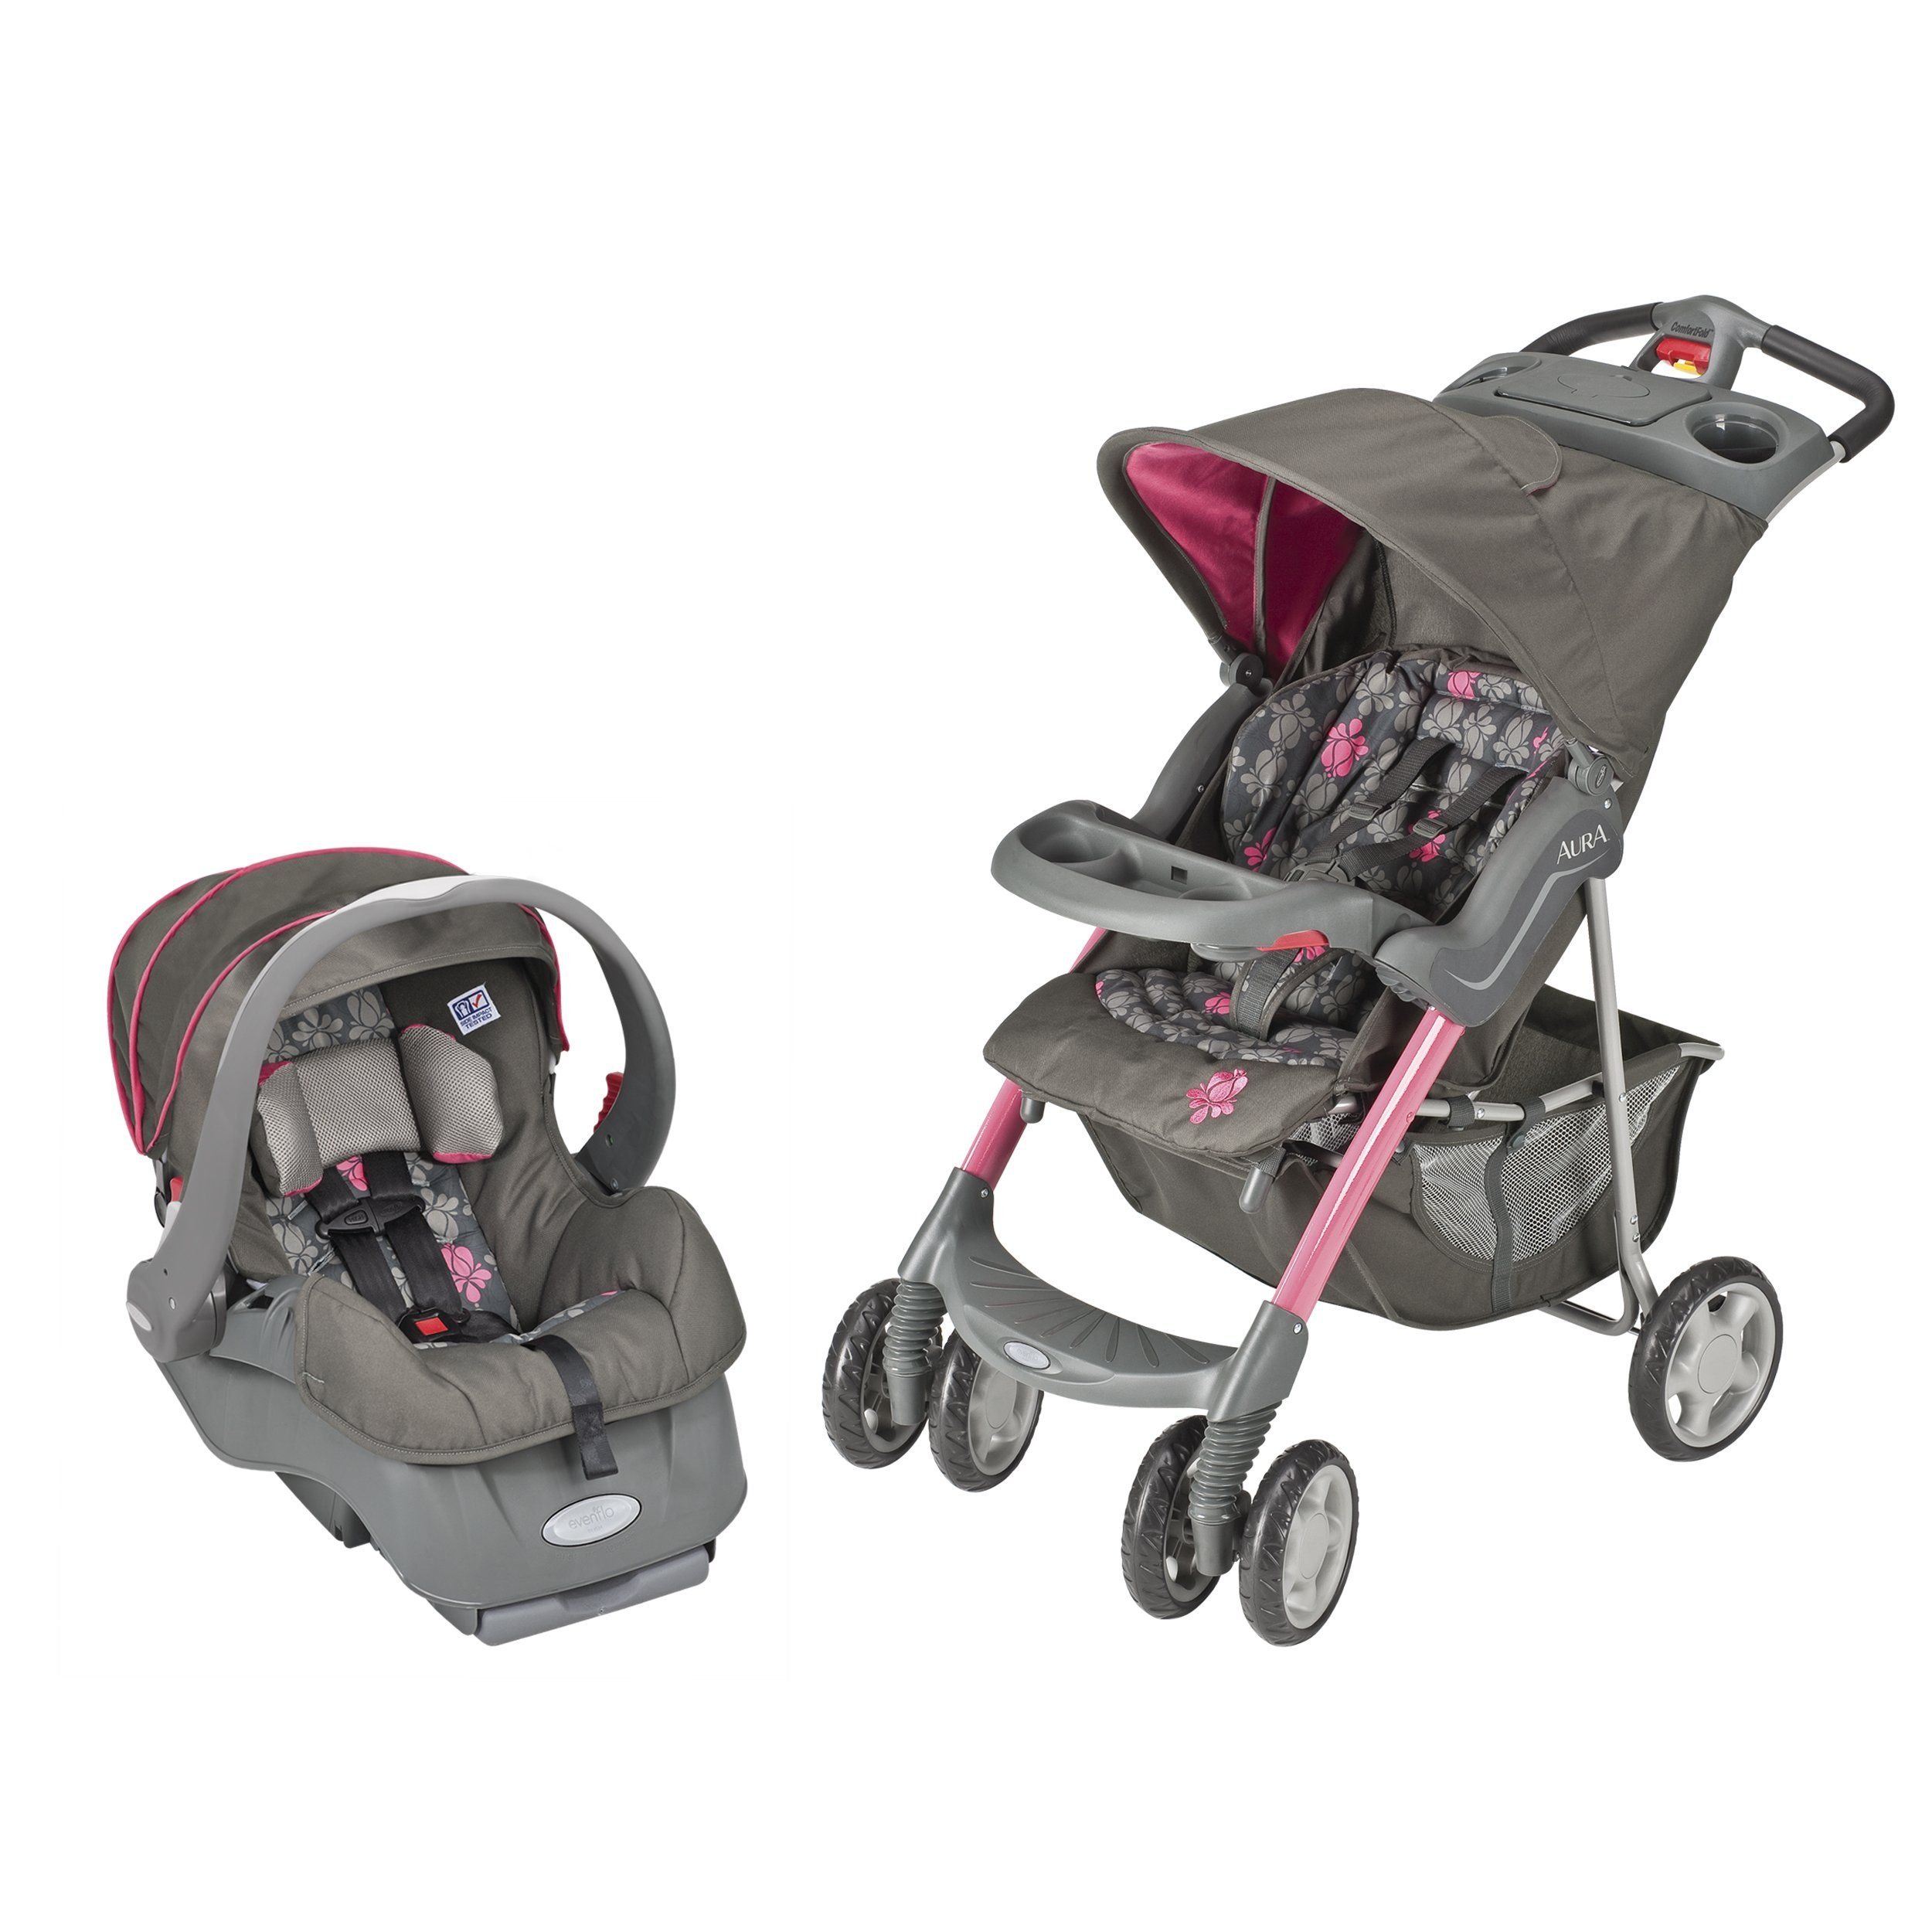 Evenflo Aura Embrace Travel System, Alahambra (With images